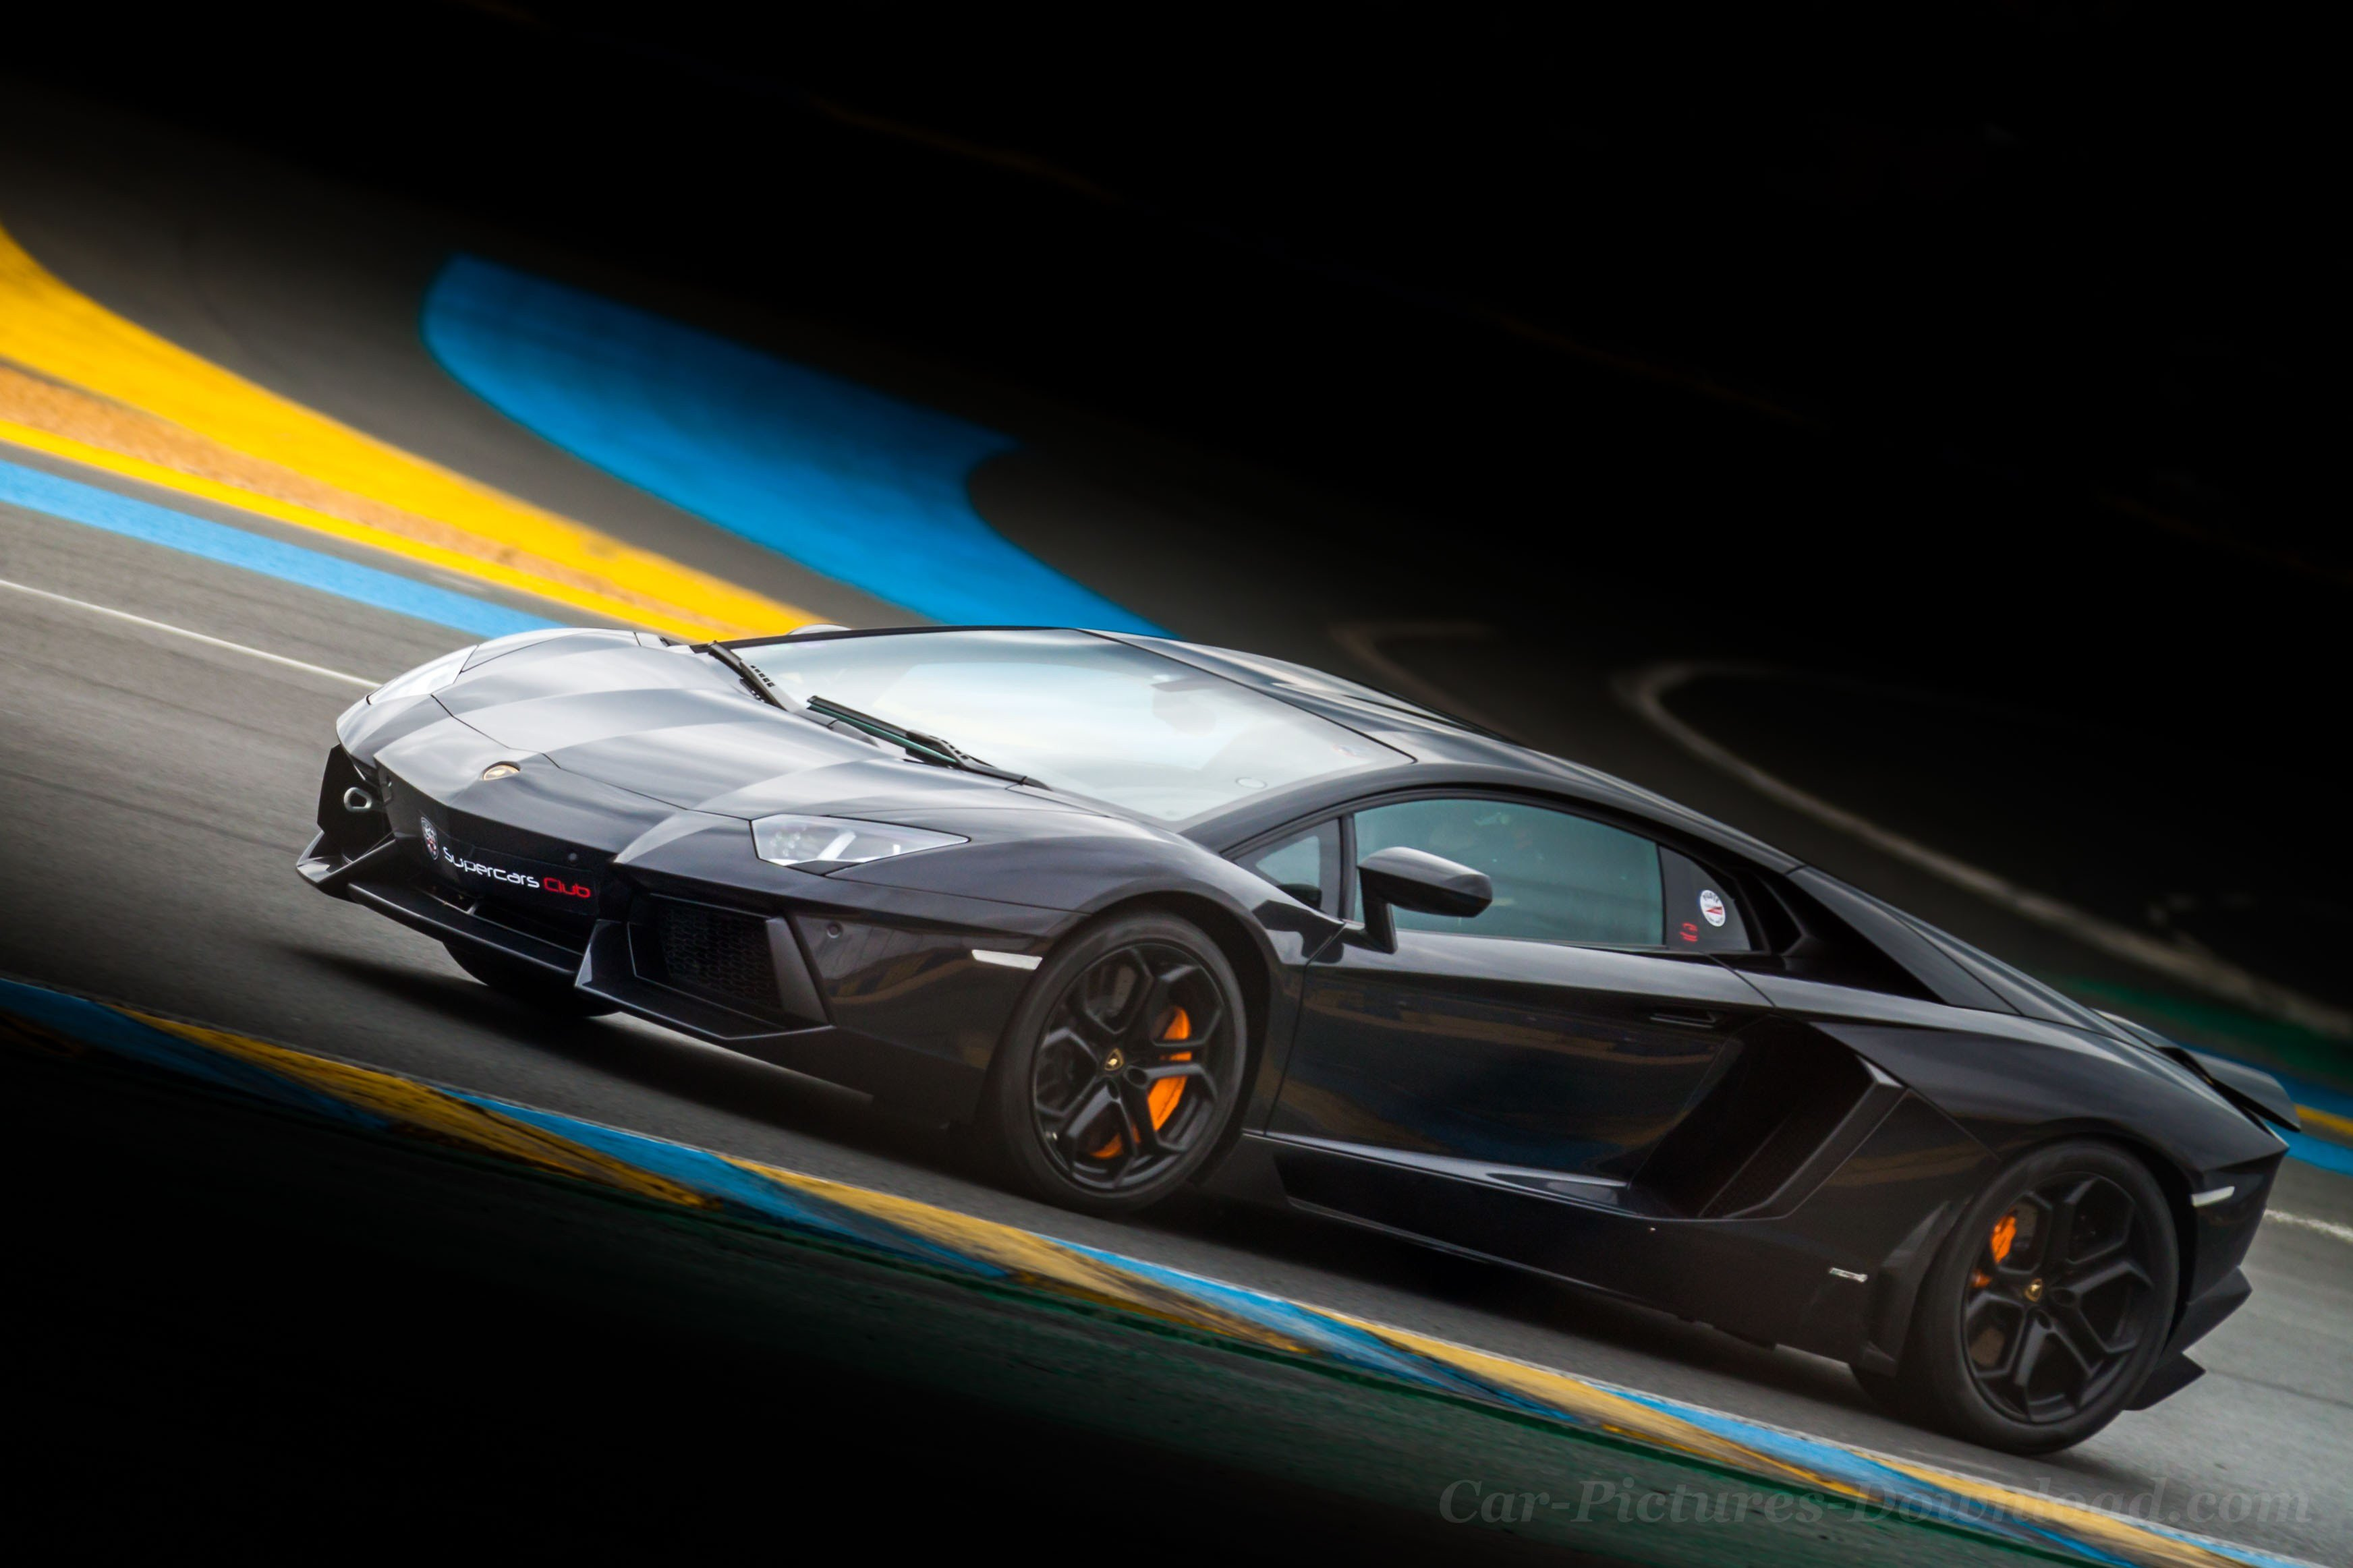 New Lamborghini Wallpapers Hd Logo Images In Hi Res Free To On This Month